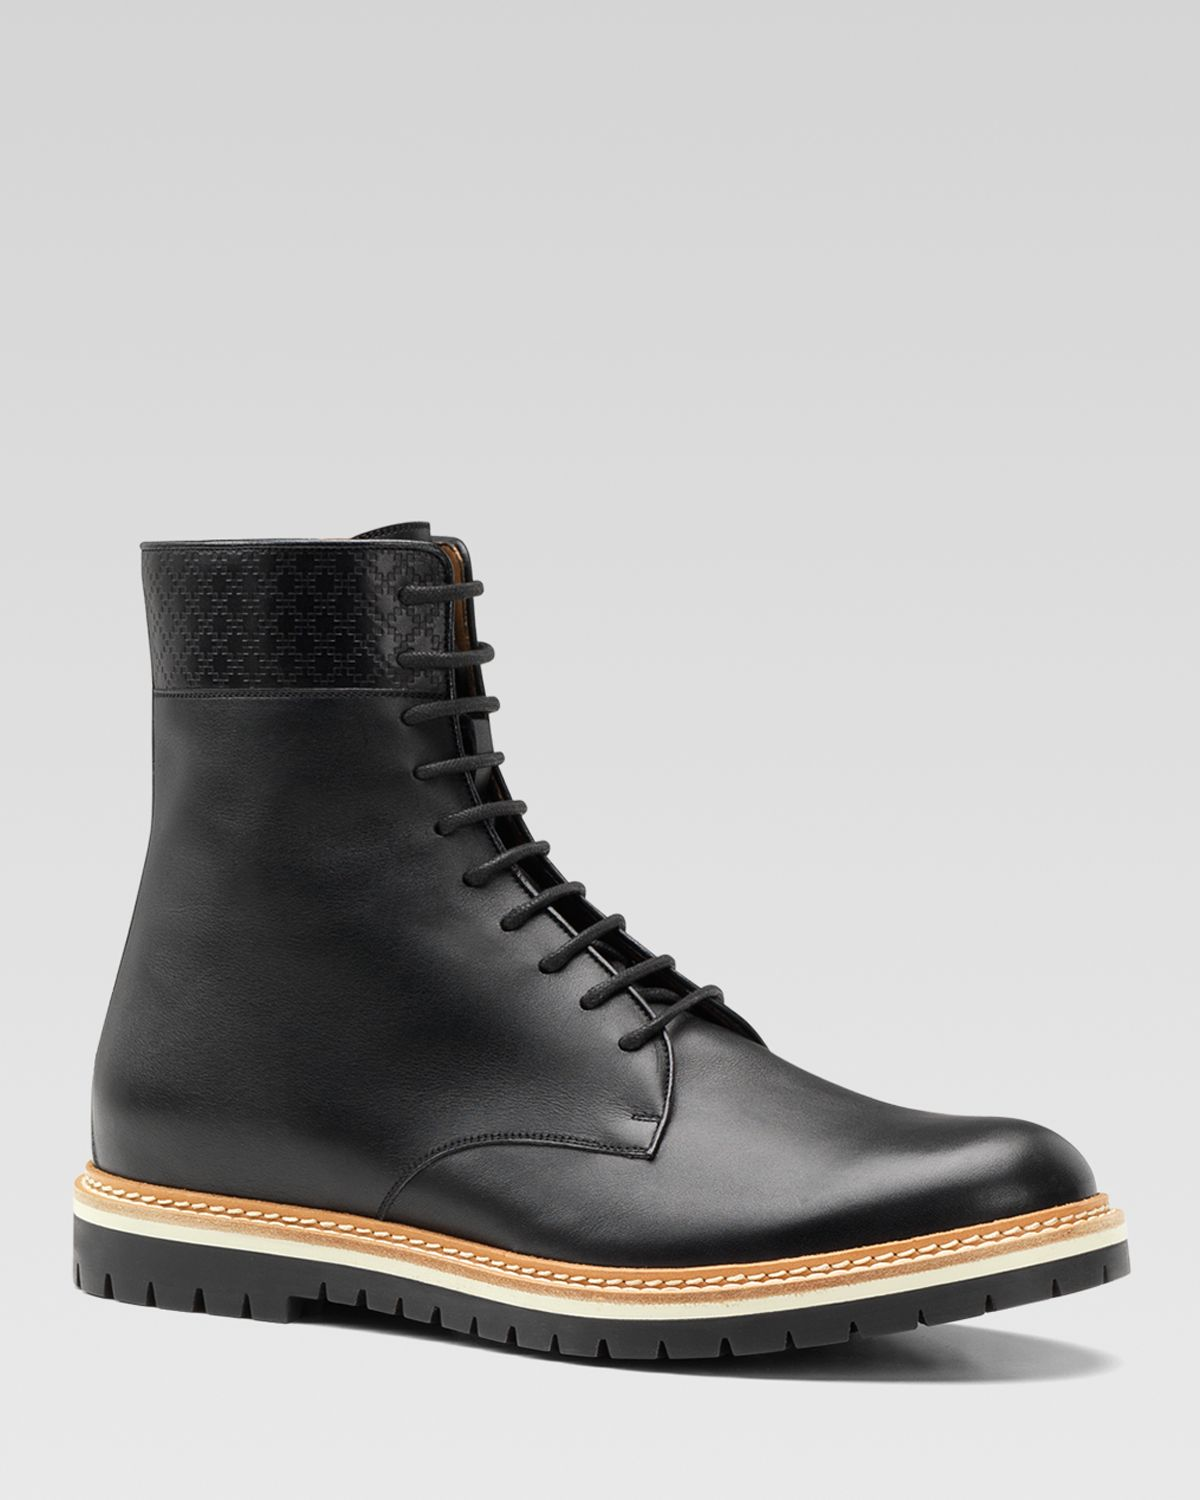 gucci galdor black leather boots in black for lyst